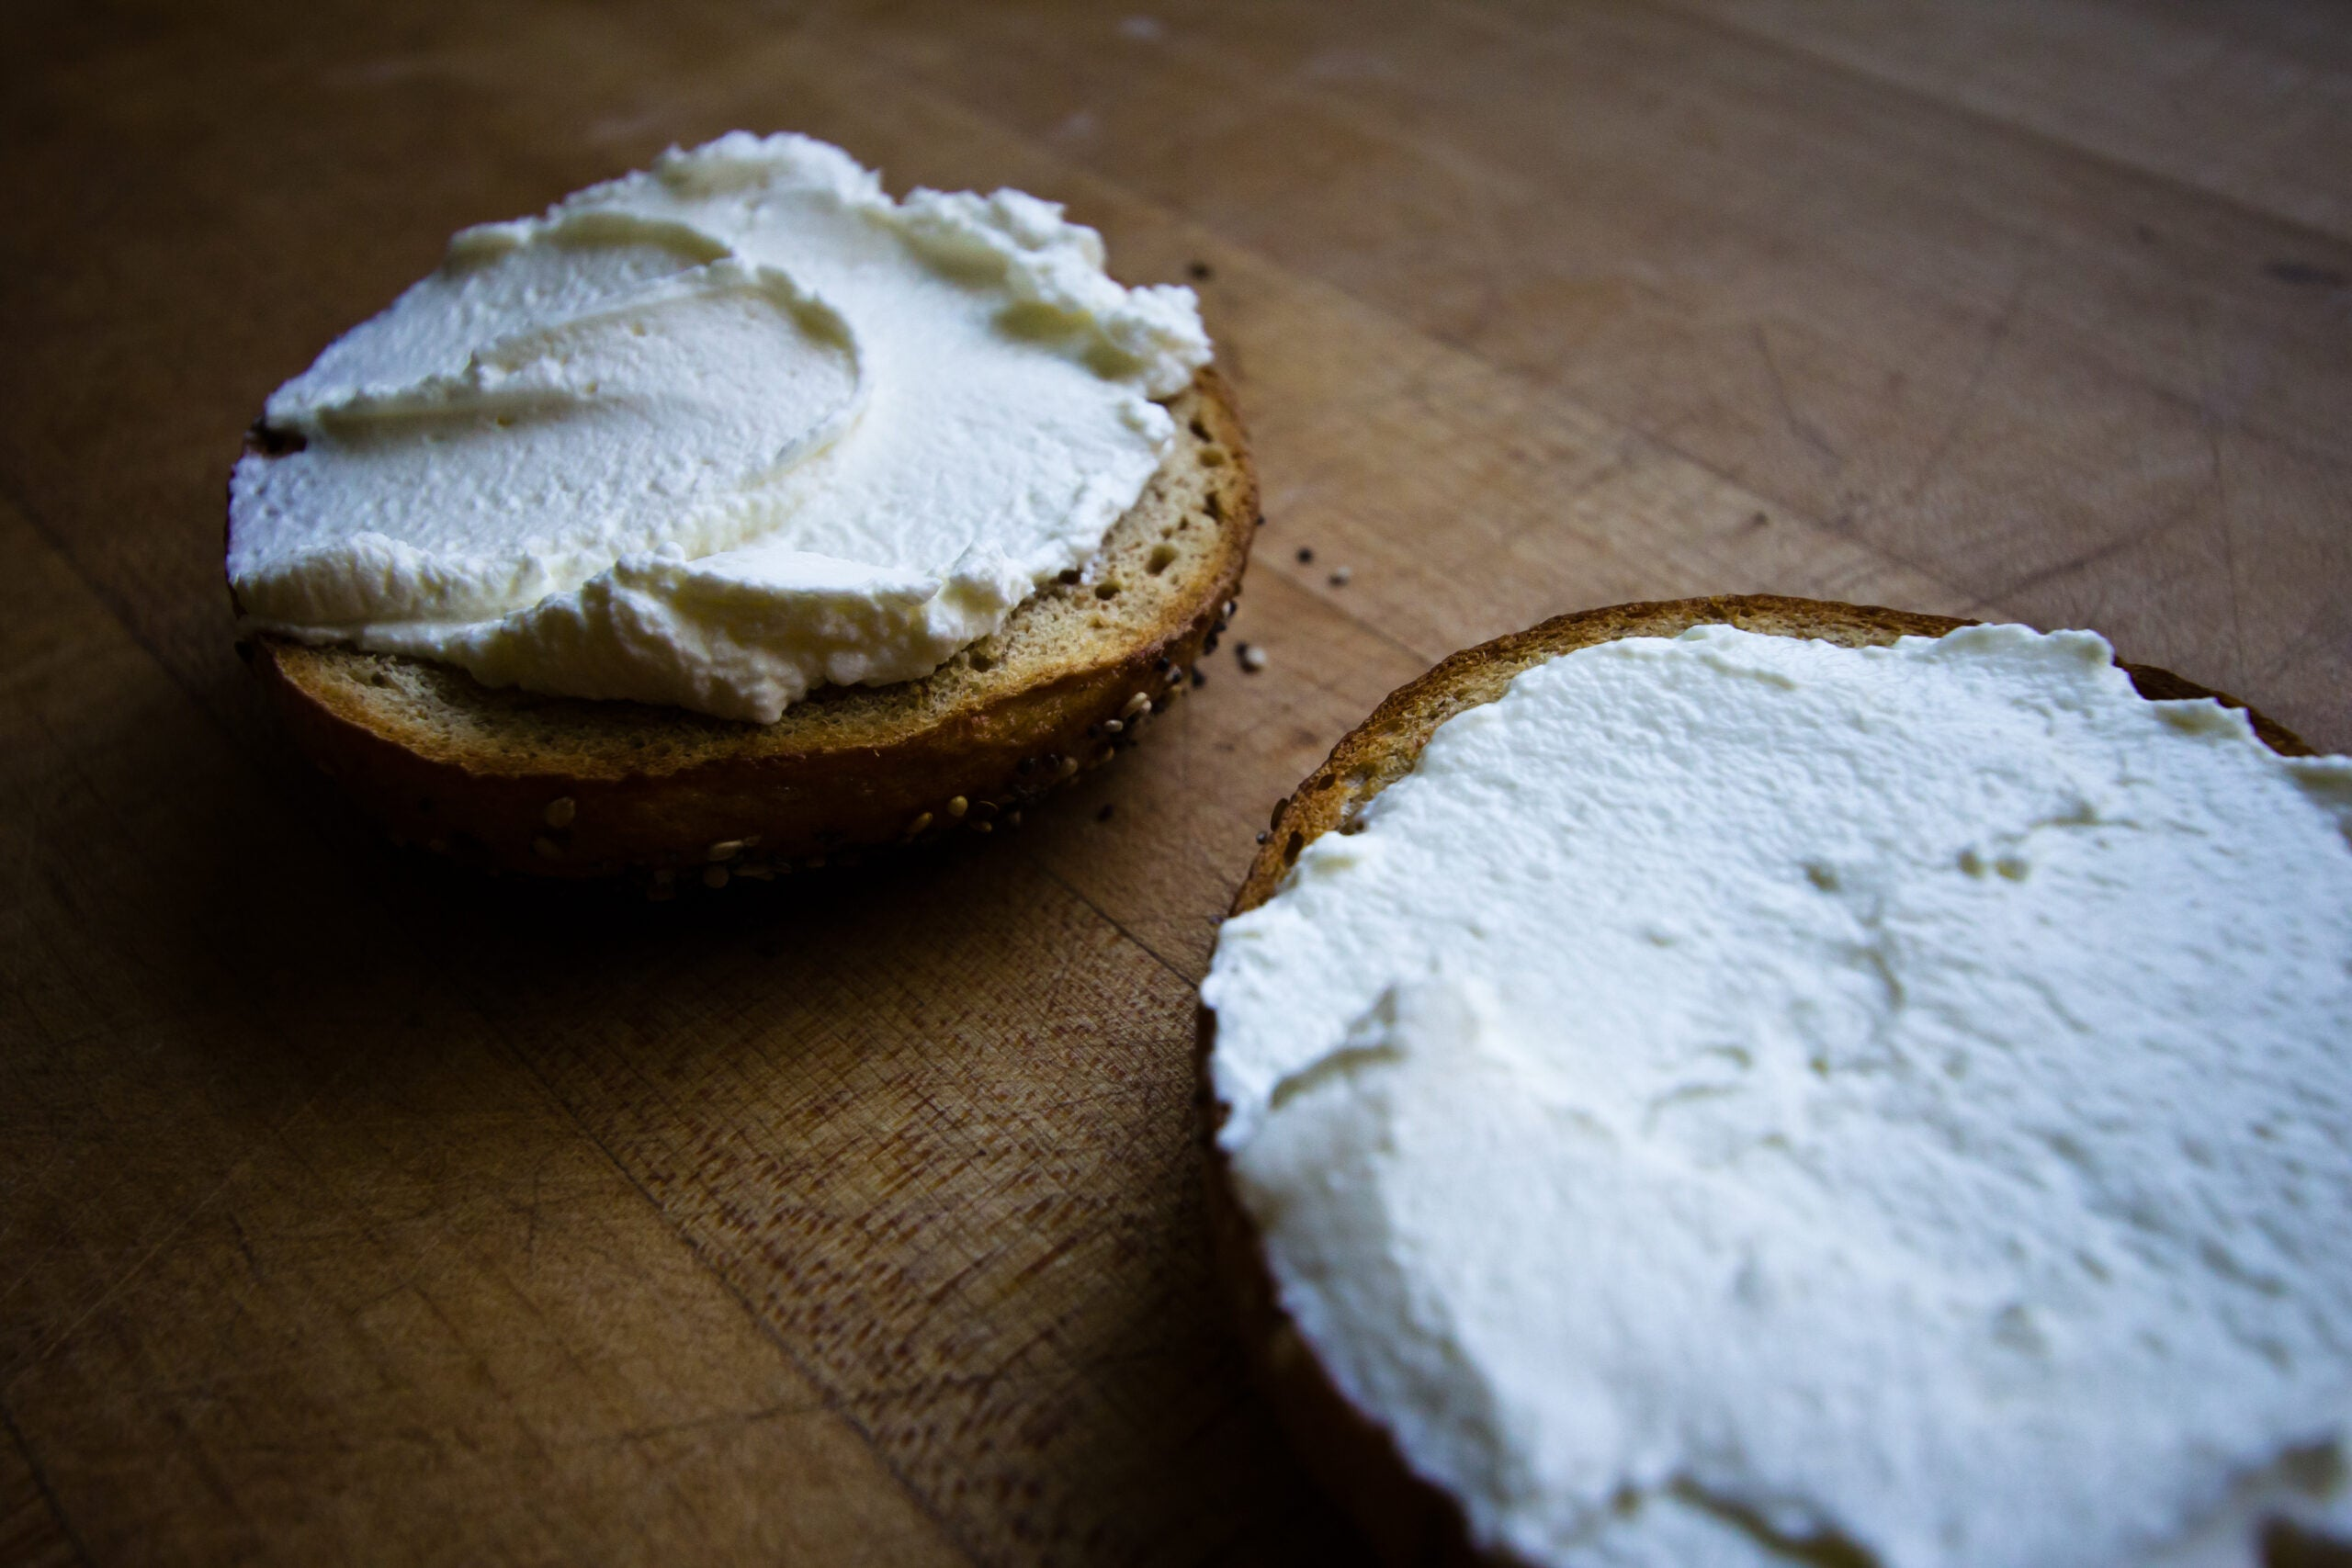 How Do You Make A Healthier Cream Cheese That Doesn't Suck?